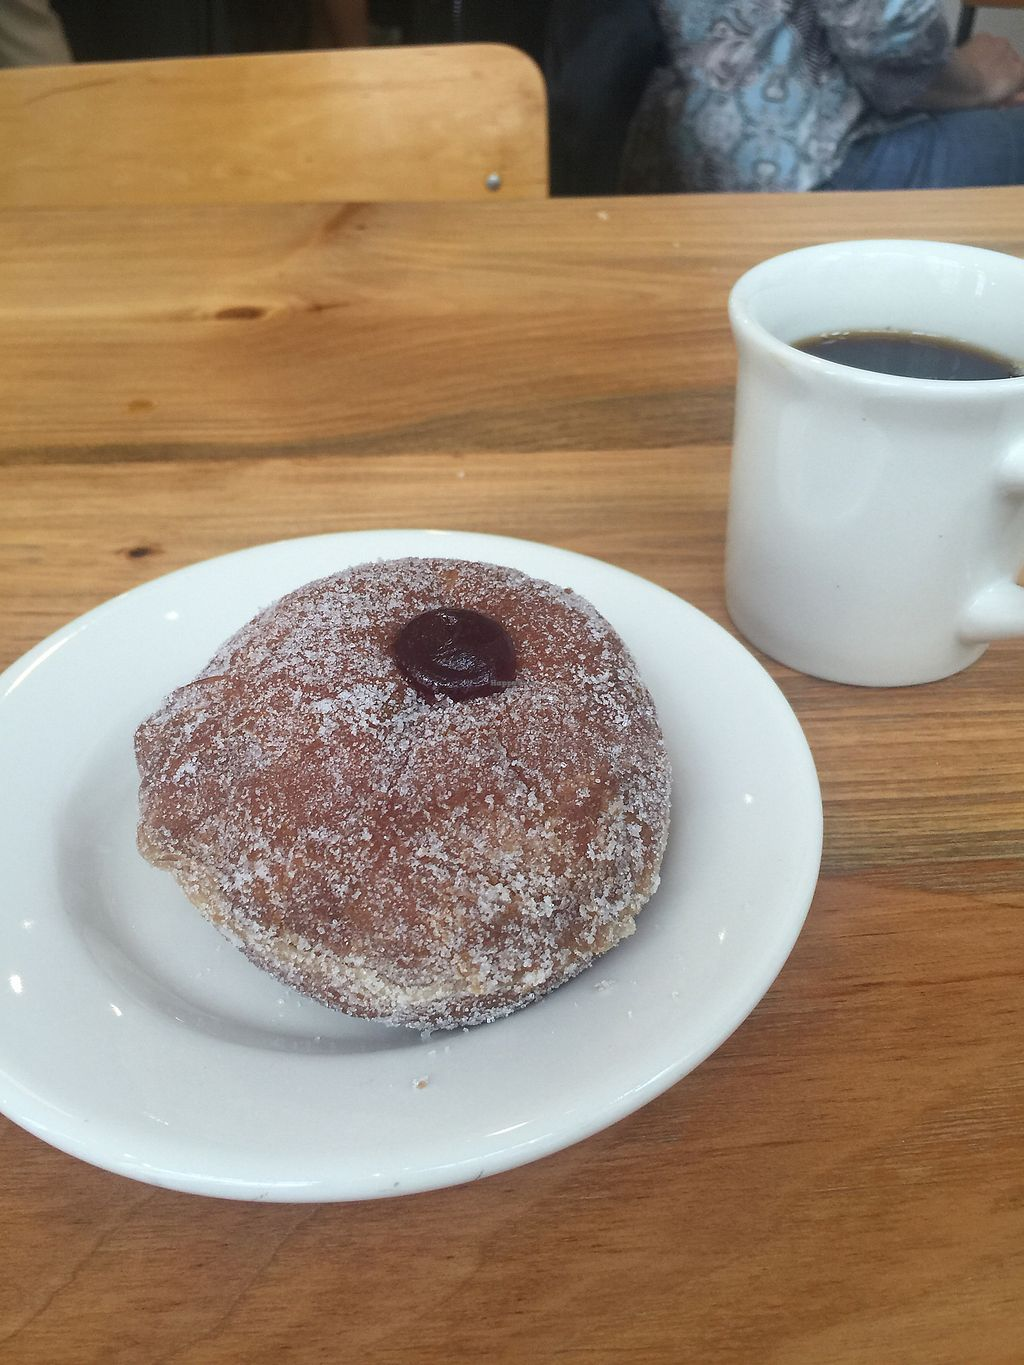 "Photo of Knead Doughnuts  by <a href=""/members/profile/andoba"">andoba</a> <br/>Vegan jelly donut  <br/> November 5, 2017  - <a href='/contact/abuse/image/99533/322224'>Report</a>"